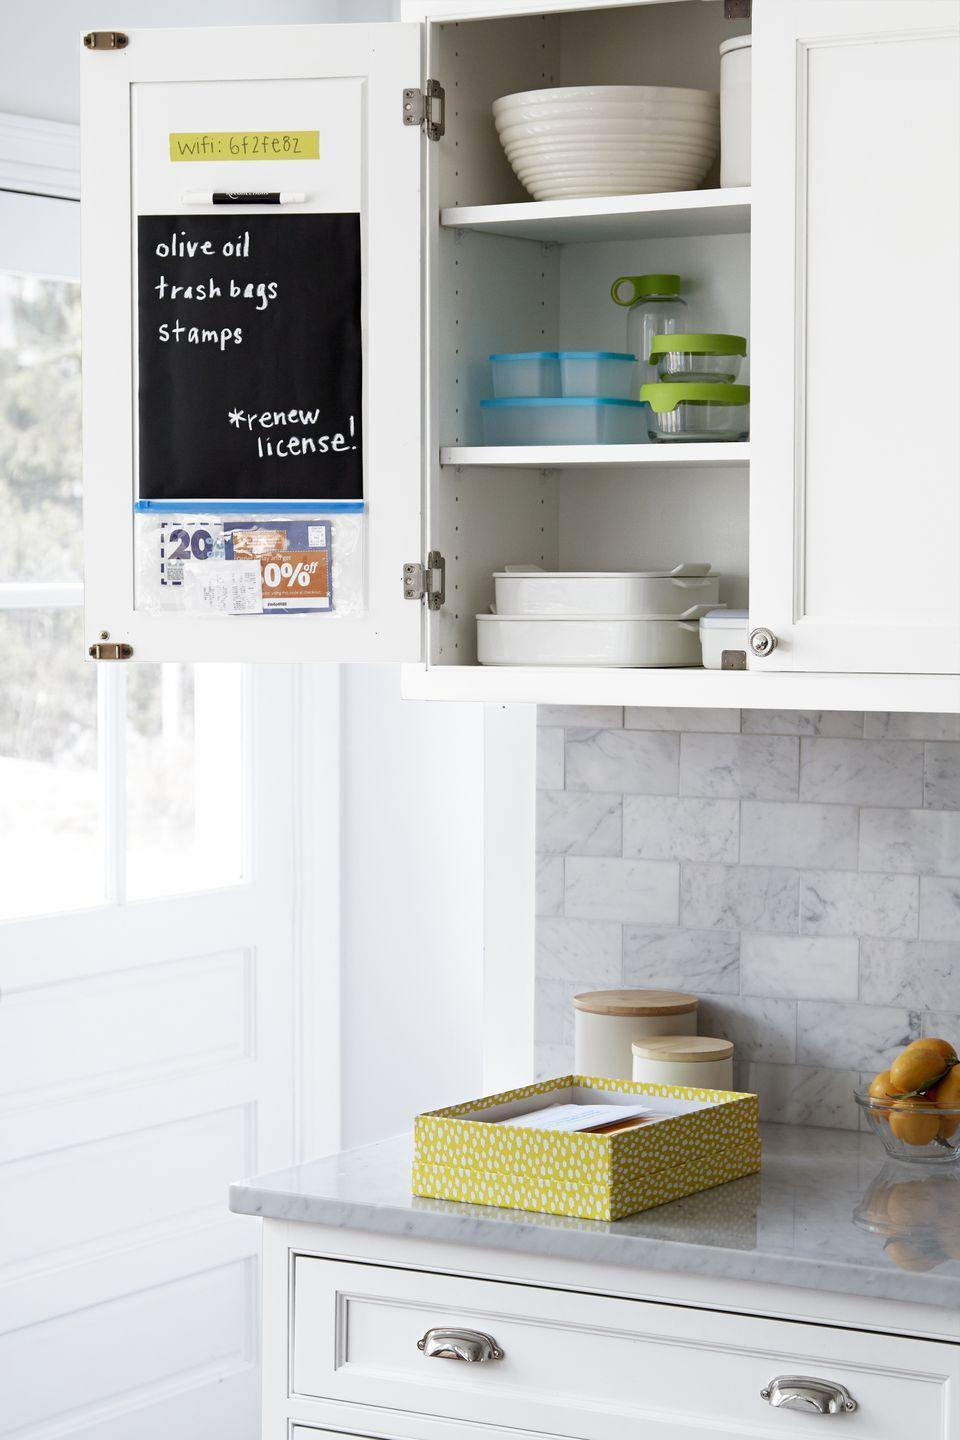 """<p>Turn the inside of a cabinet door into an undercover organization station that stores important info like the <a href=""""https://www.womansday.com/life/travel-tips/a56554/airport-wifi/"""" rel=""""nofollow noopener"""" target=""""_blank"""" data-ylk=""""slk:WiFi password"""" class=""""link rapid-noclick-resp"""">WiFi password</a>, memos, and coupons. Create your own memo board by trimming chalkboard vinyl to size and position at eye level.</p><p><strong><a class=""""link rapid-noclick-resp"""" href=""""https://www.amazon.com/Cricut-2002362-Vinyl-Chalkboard/dp/B00LJV1JLI?tag=syn-yahoo-20&ascsubtag=%5Bartid%7C10070.g.3310%5Bsrc%7Cyahoo-us"""" rel=""""nofollow noopener"""" target=""""_blank"""" data-ylk=""""slk:SHOP CHALKBOARD VINYL"""">SHOP CHALKBOARD VINYL</a></strong></p>"""